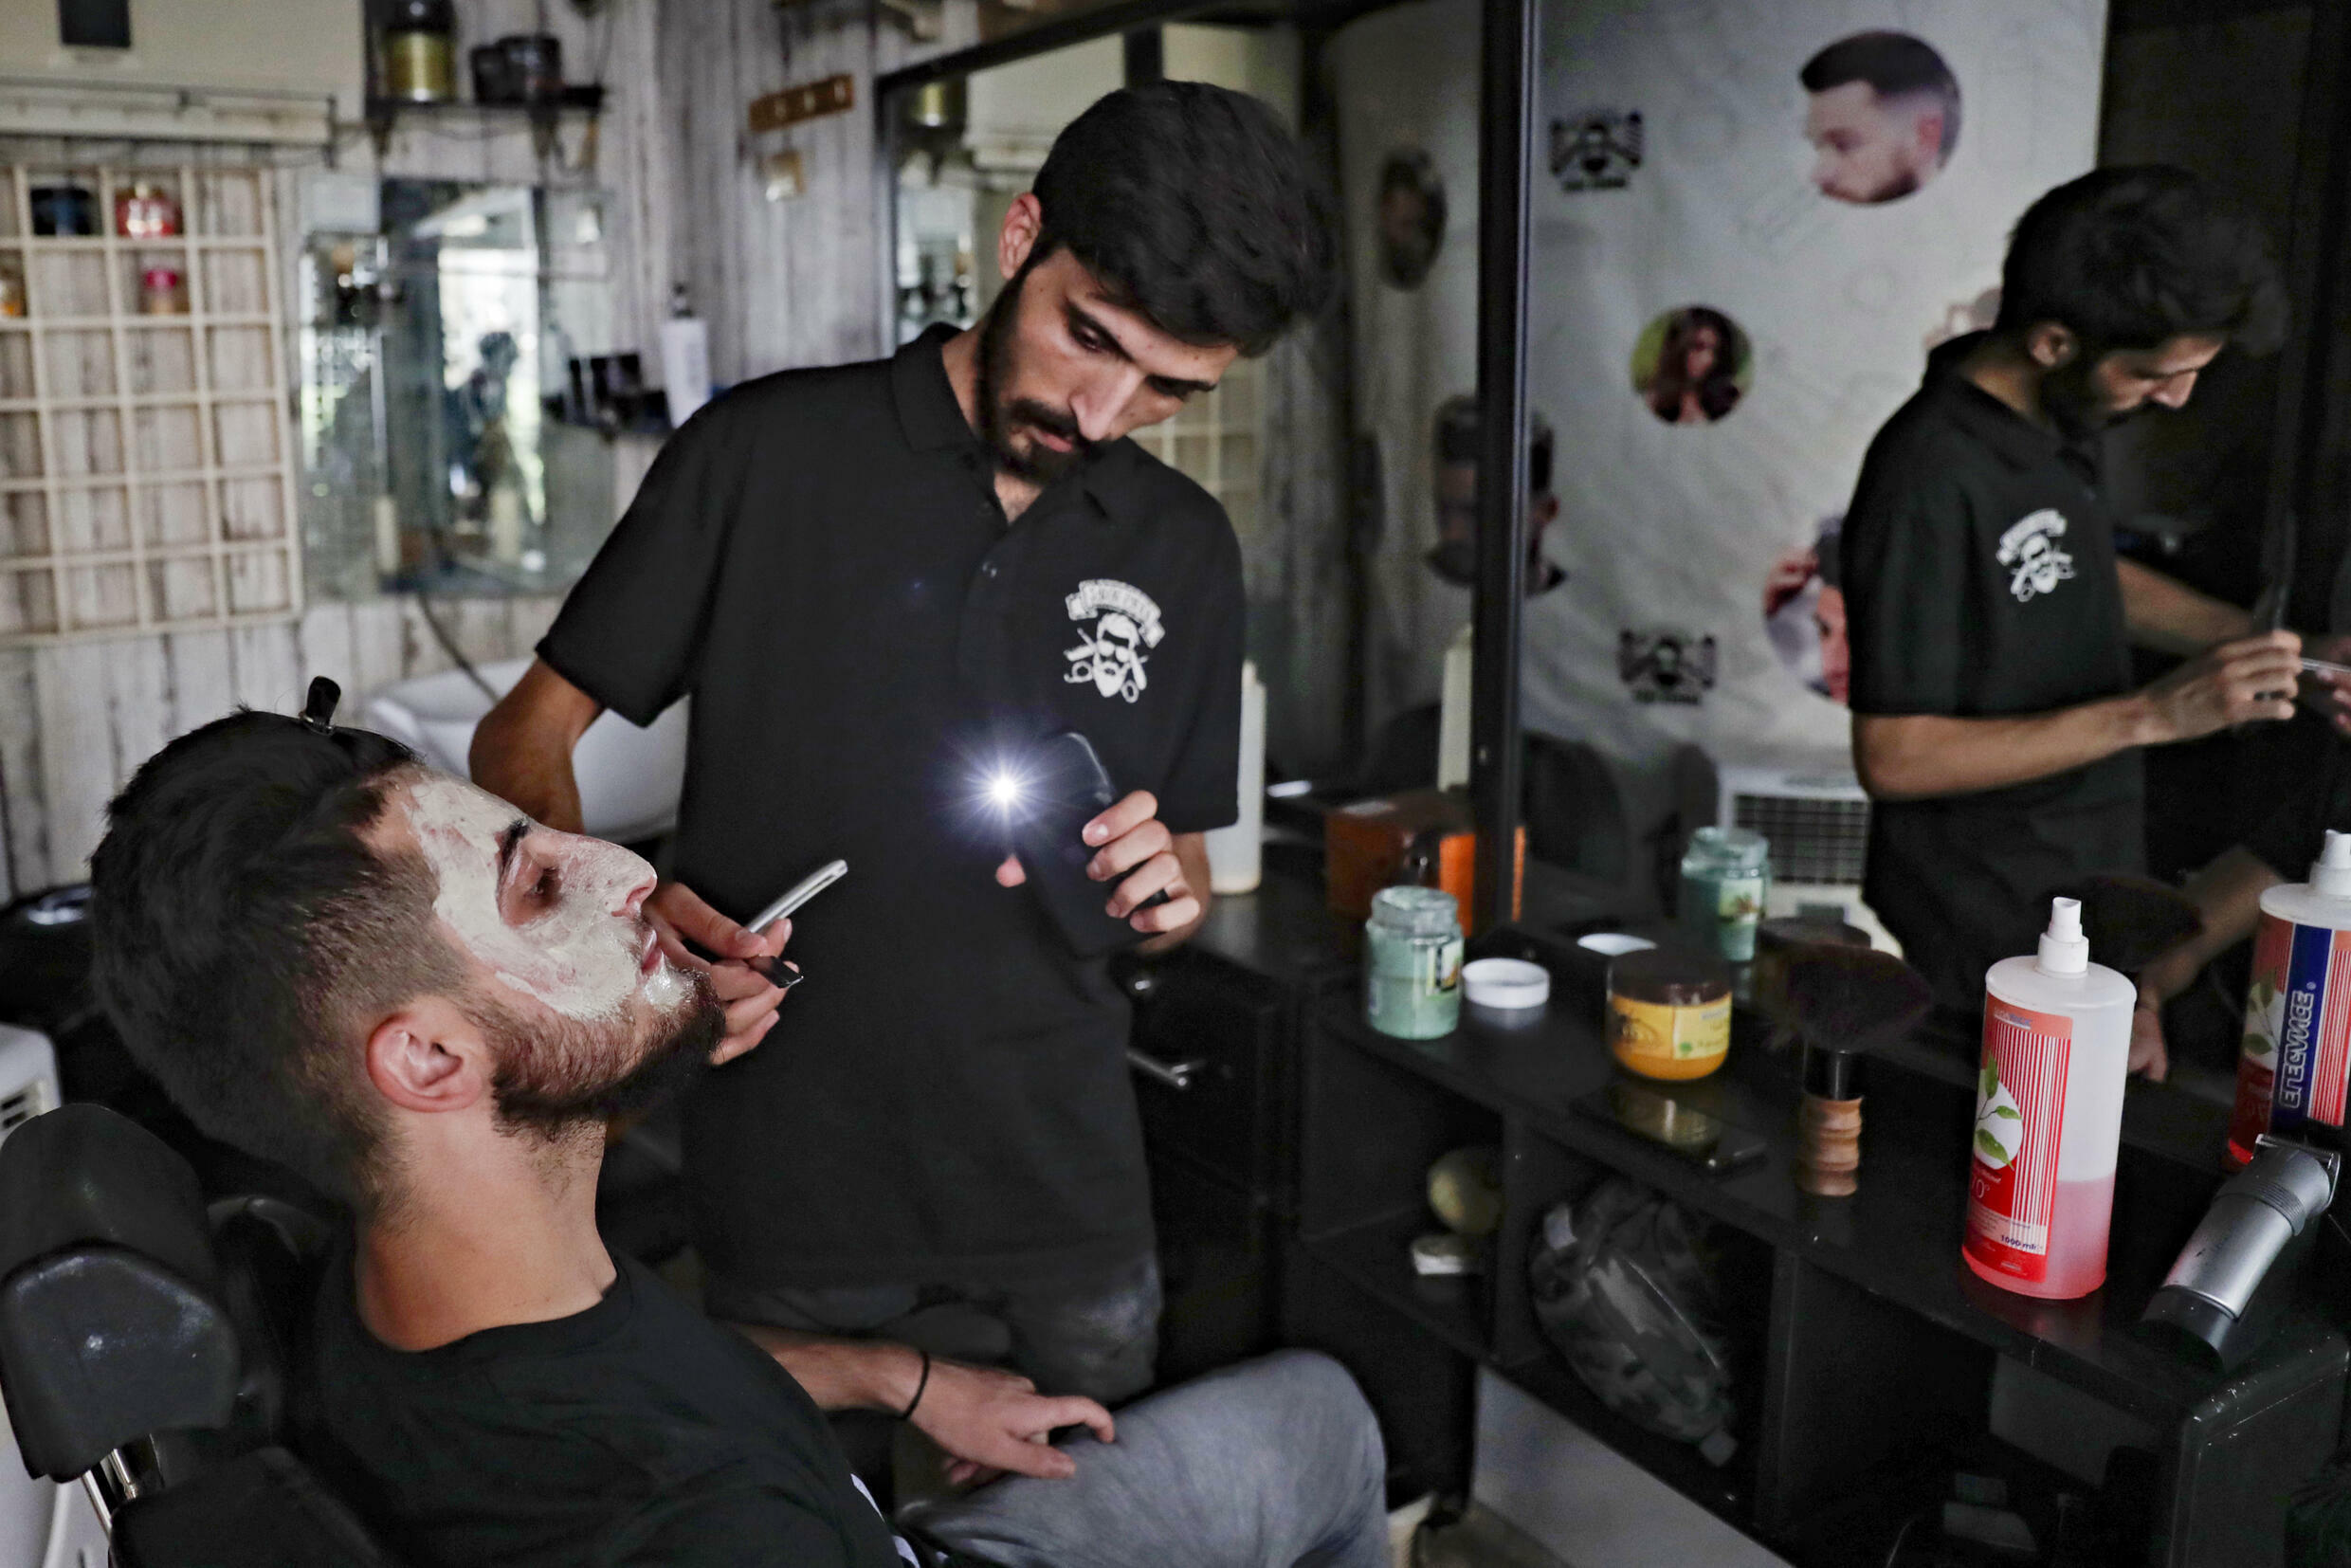 A barber uses the flashlight on his phone as he shaves a customer due to the power outages while others have moved their chairs onto the pavement to get direct daylight